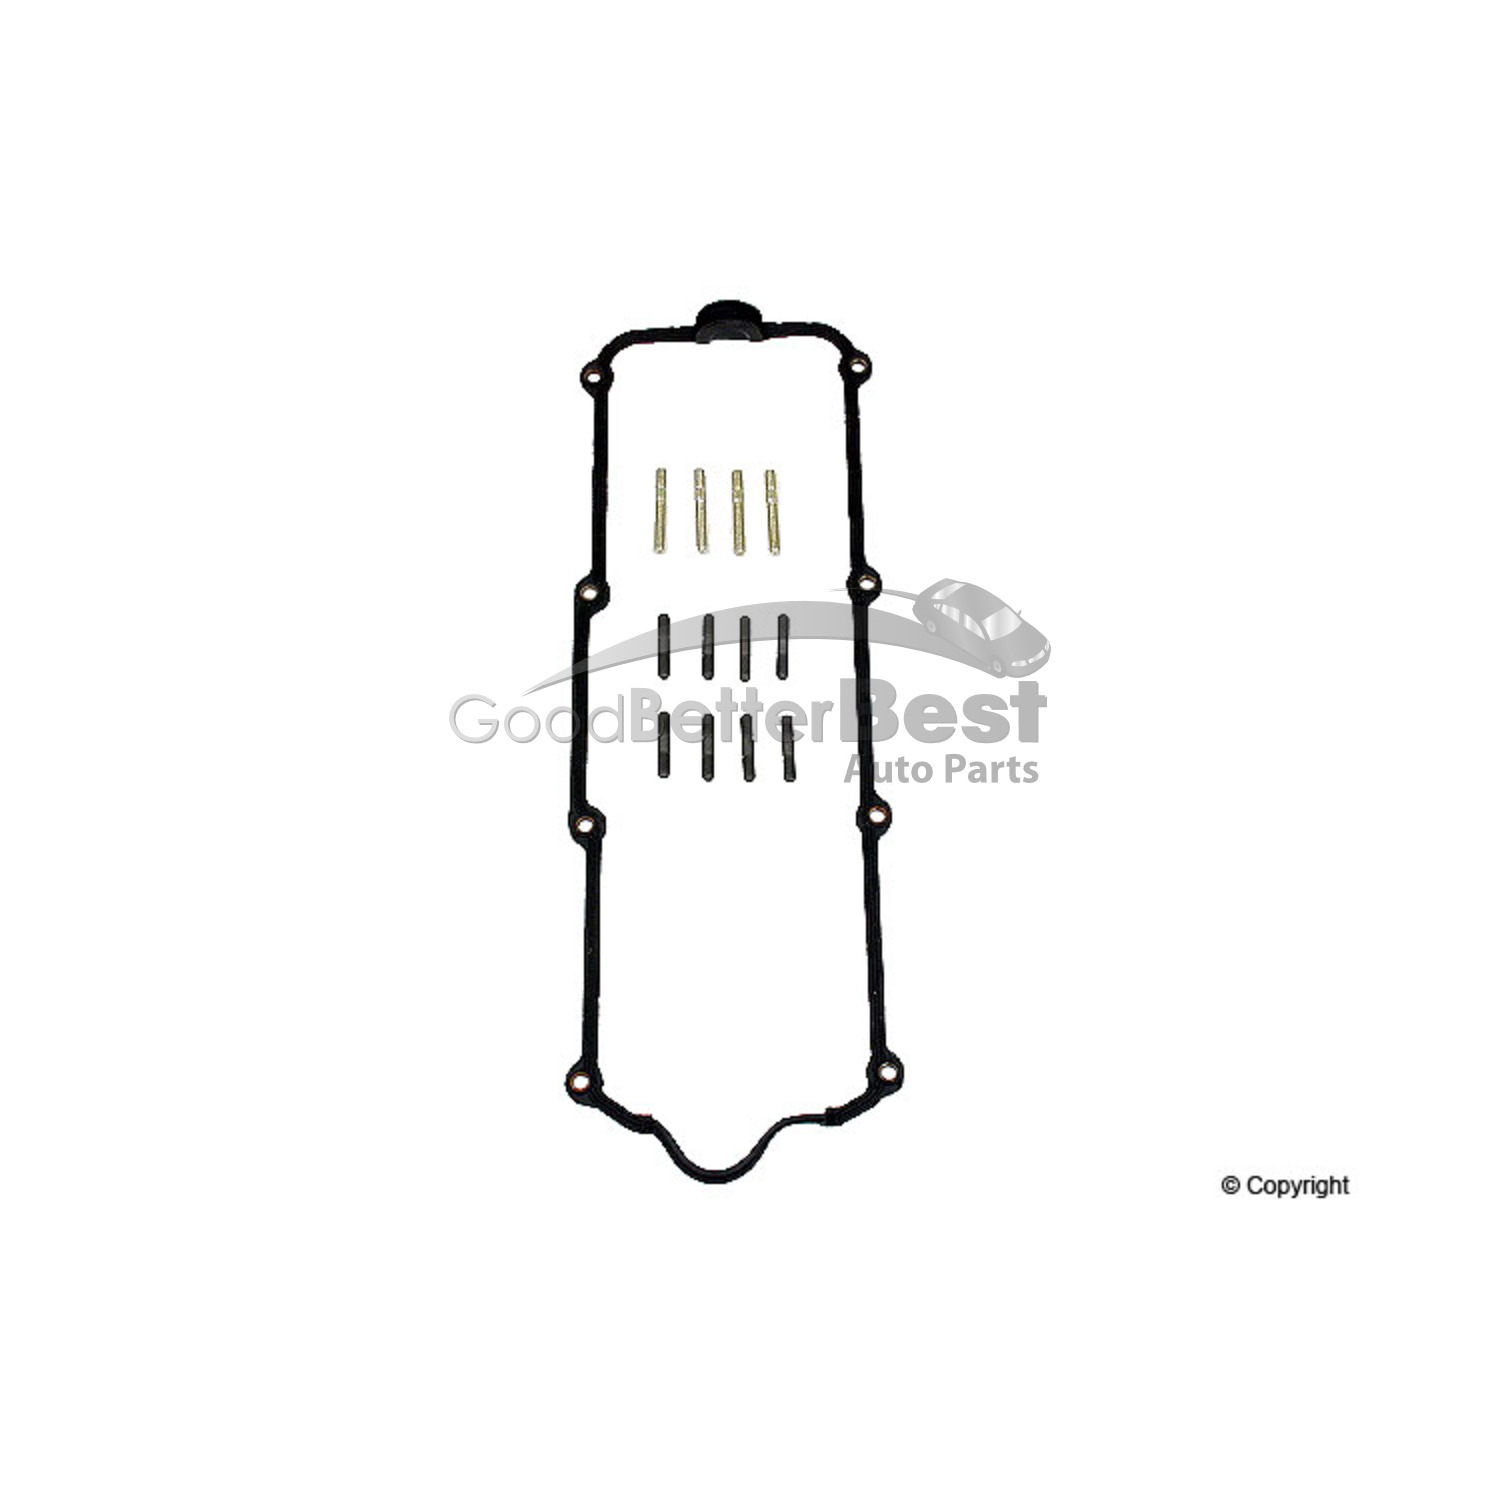 New Victor Reinz Engine Valve Cover Gasket Set